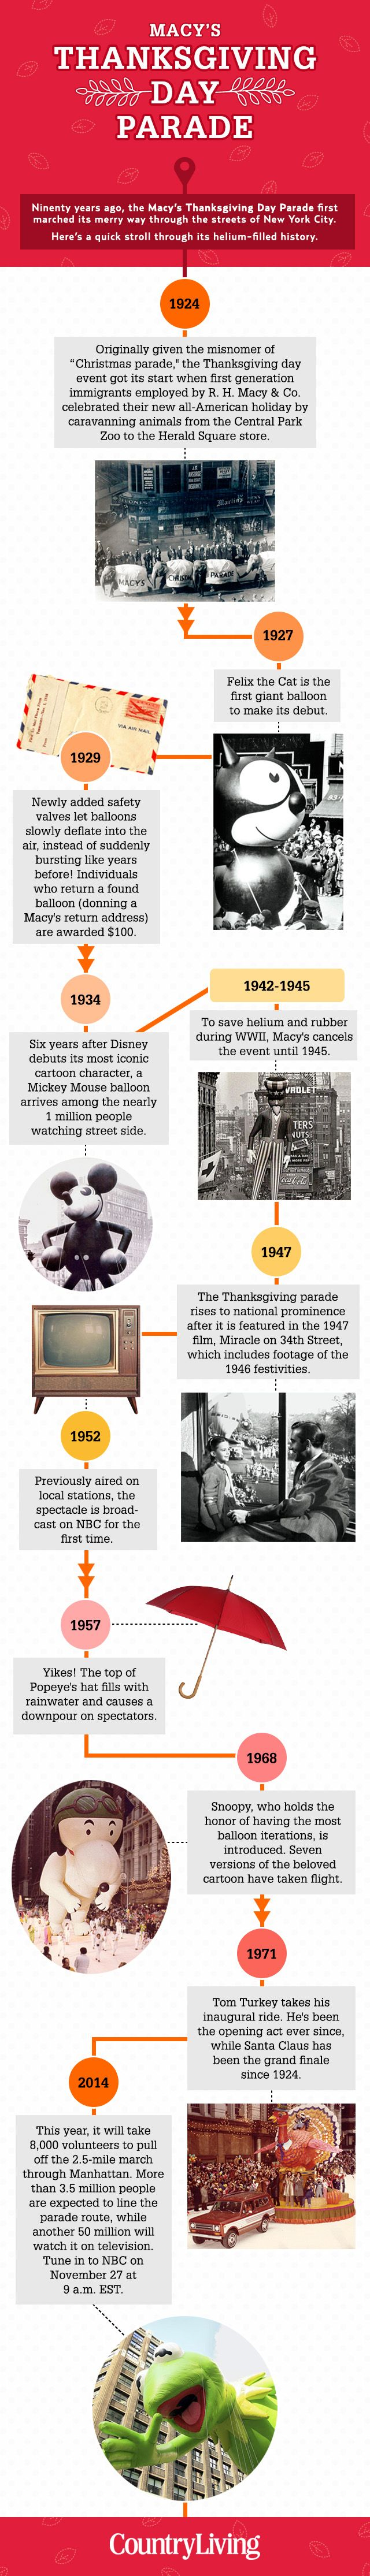 History of the Macy's Thanksgiving Day Parade - Country Living